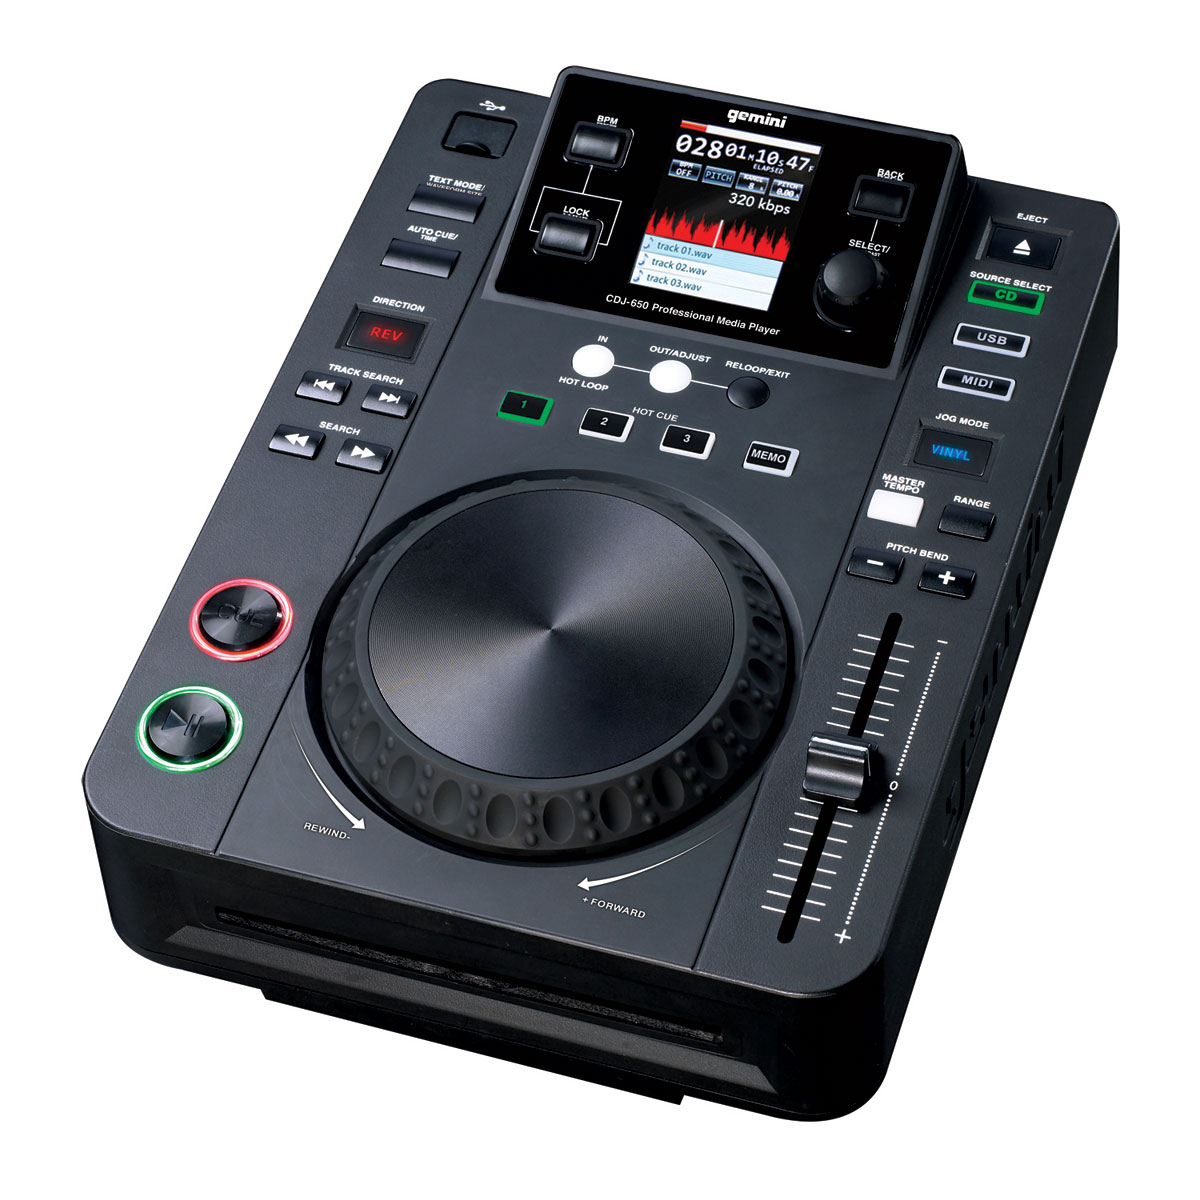 gemini cdj 650 table de mixage gemini sur ldlc. Black Bedroom Furniture Sets. Home Design Ideas